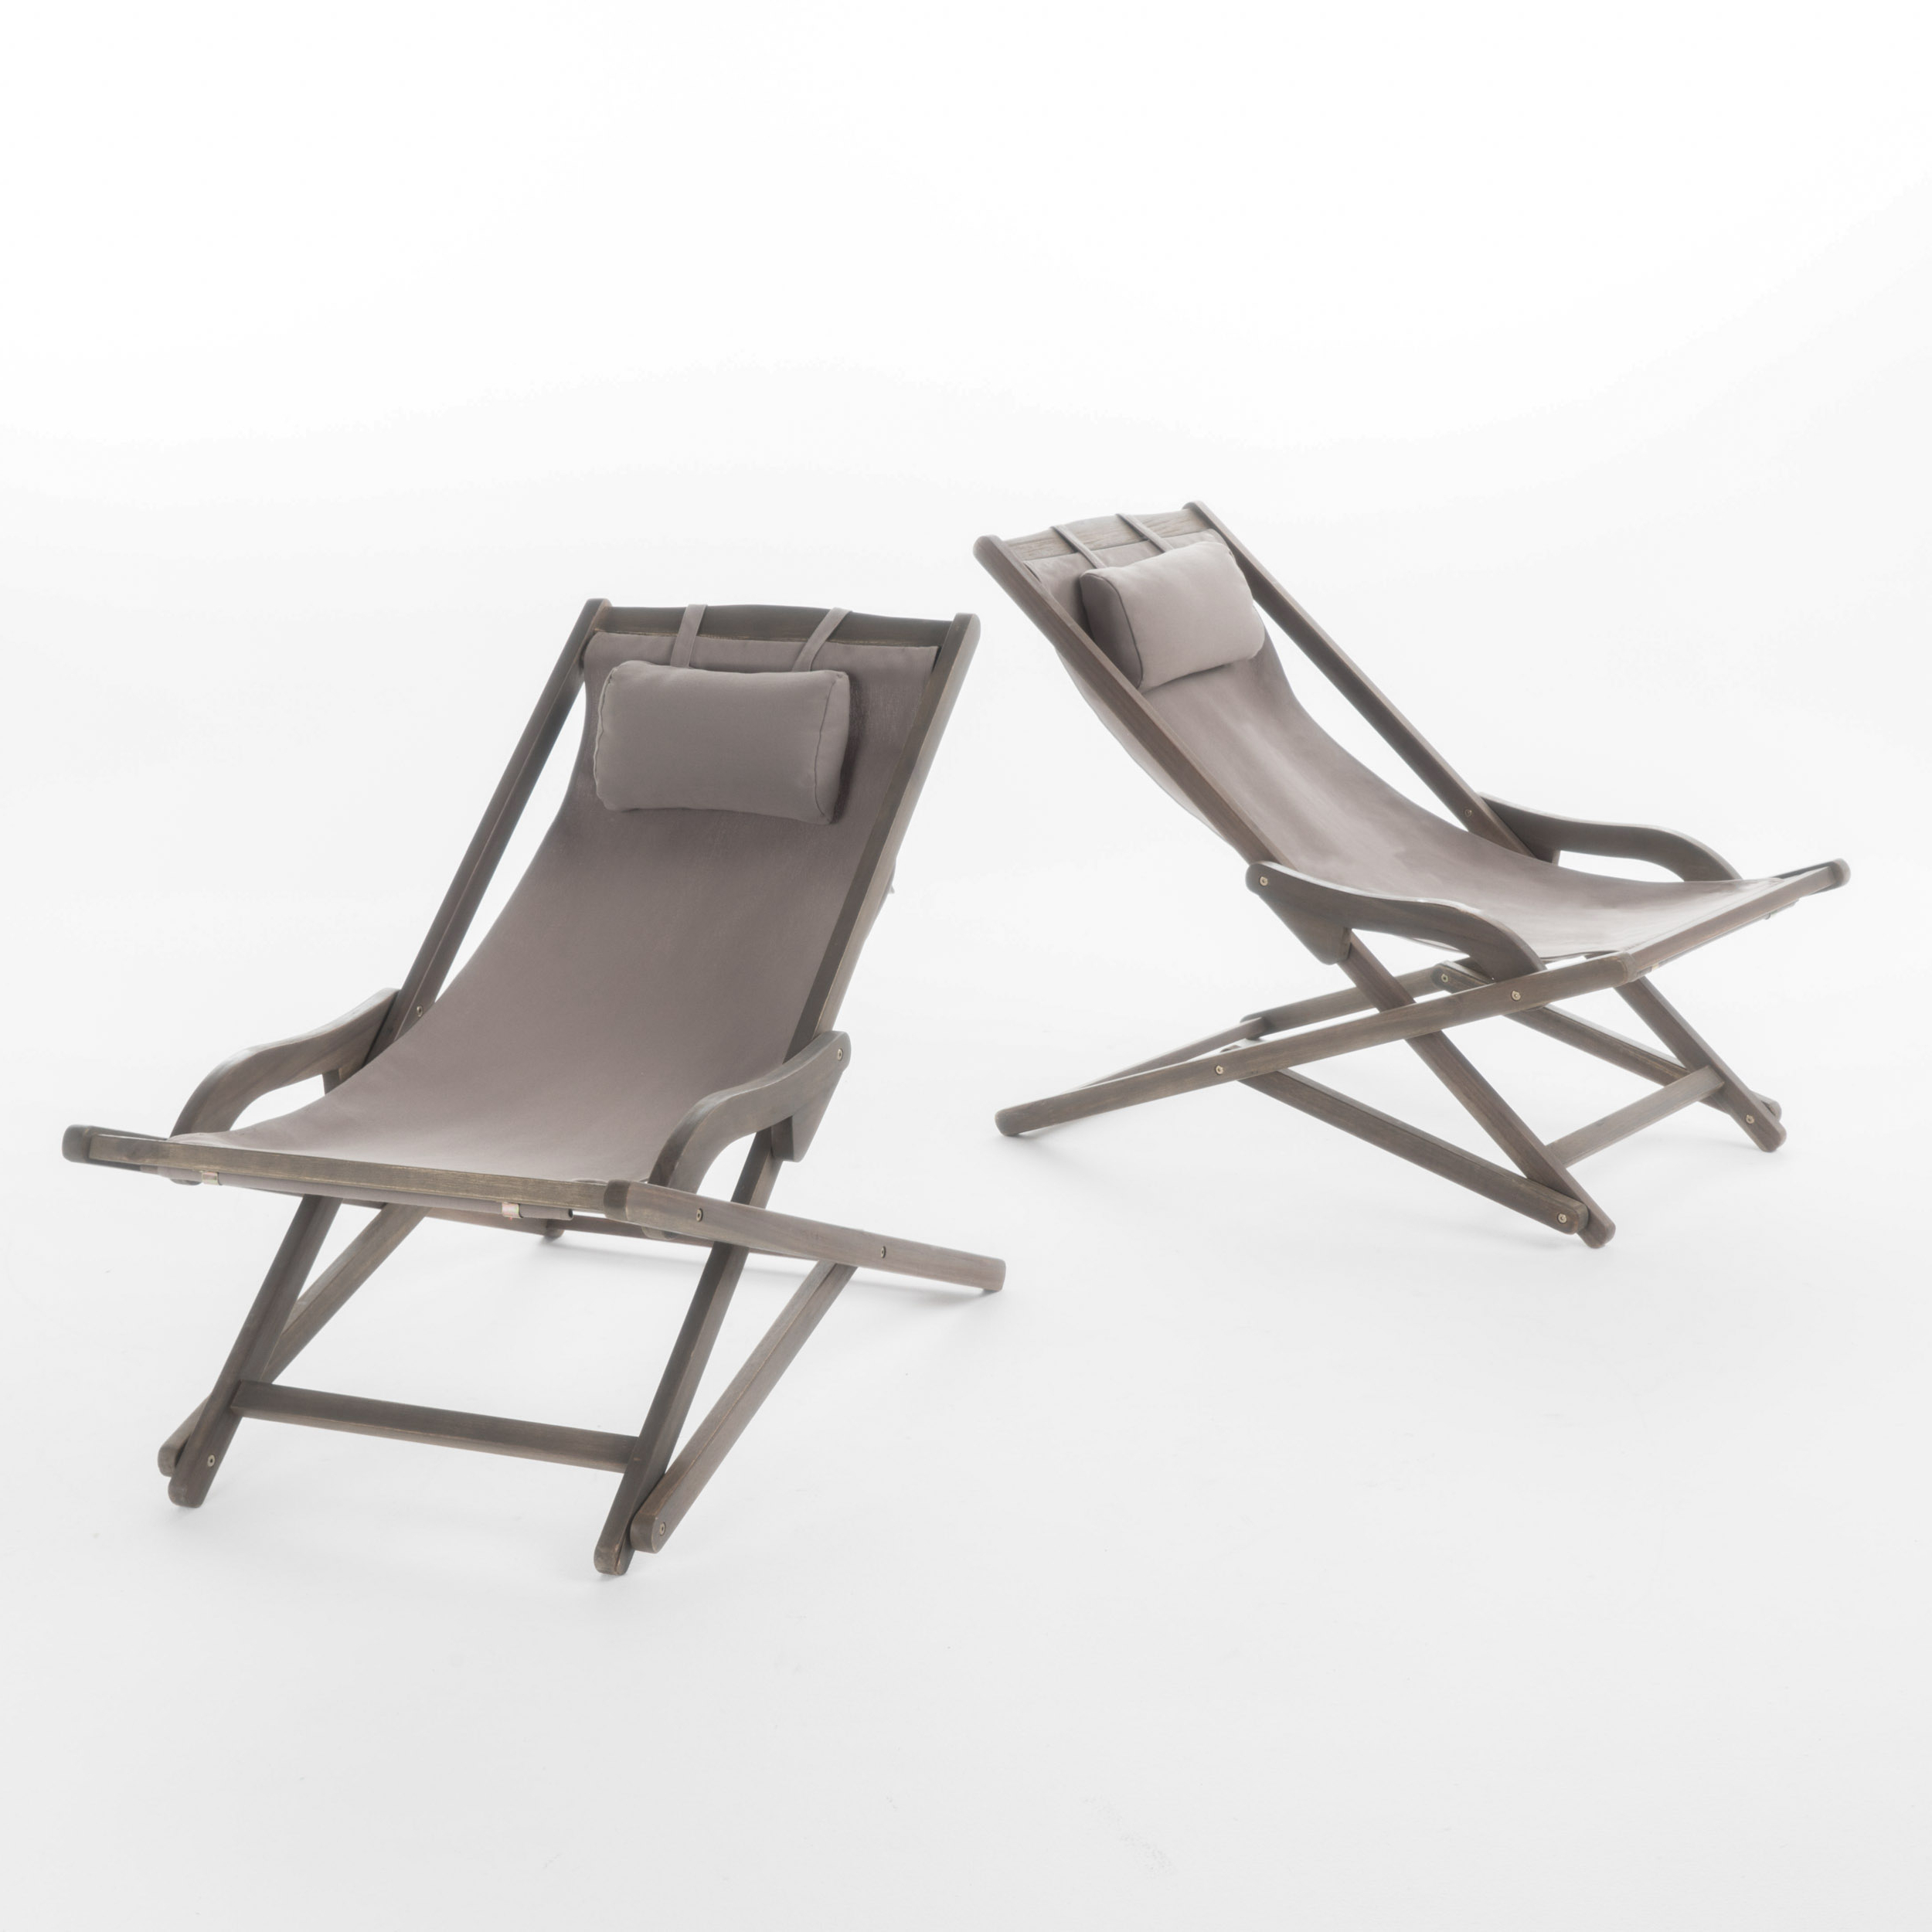 Outdoor Wood Sling Chairs In Popular Northland Outdoor Wood And Canvas Sling Chair, Set Of 2, Grey (View 15 of 25)